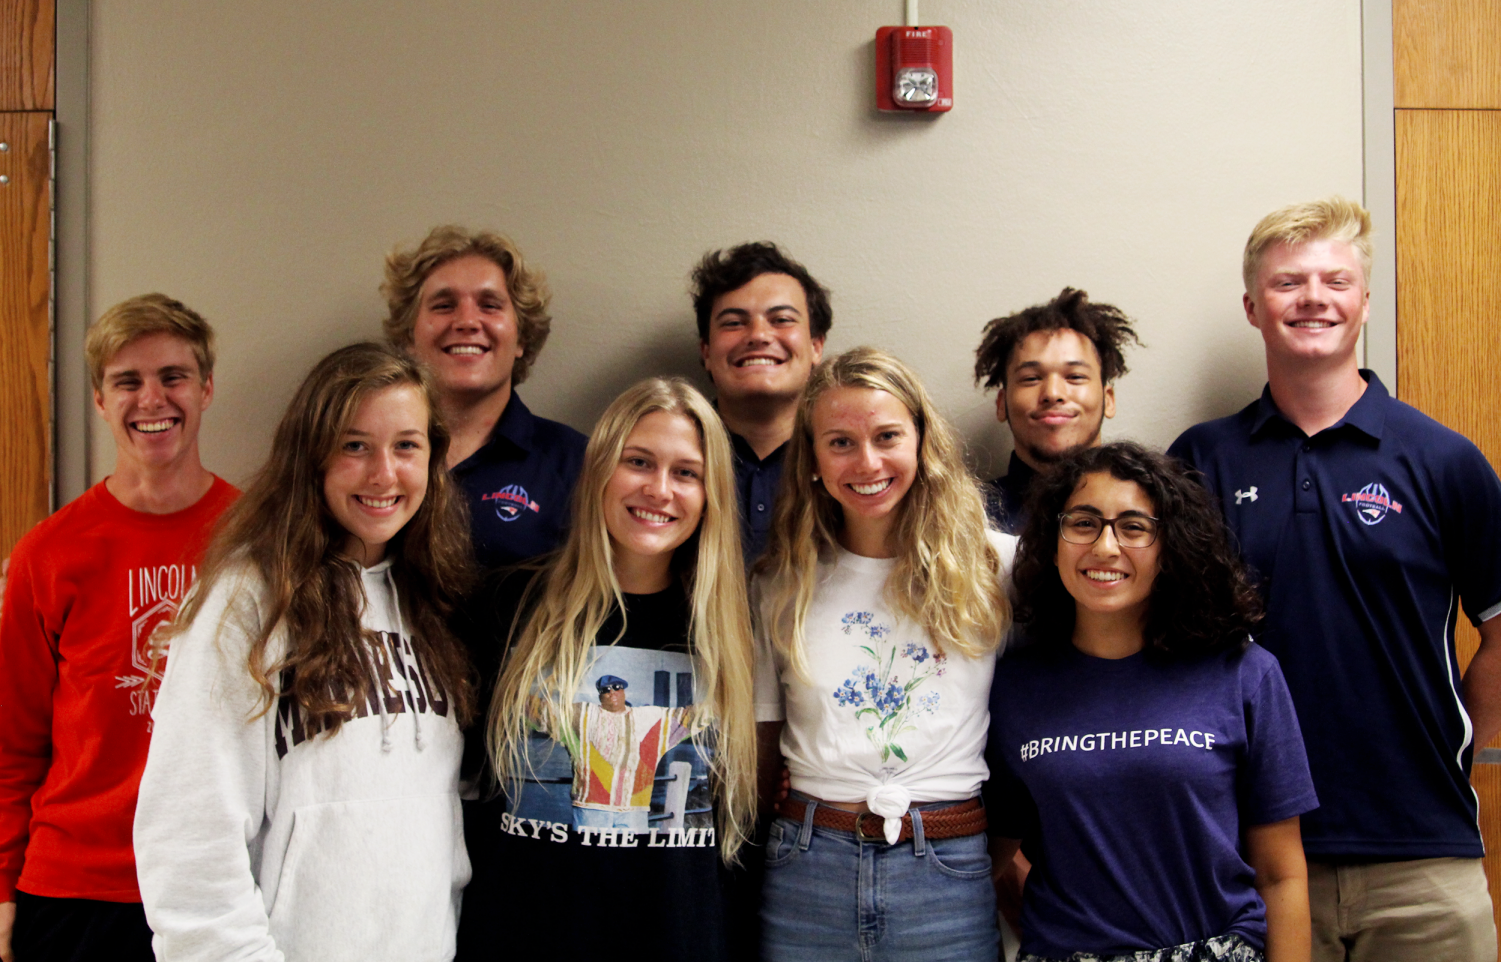 Royalty candidates for LHS include: Back left to right: Slater Dixon, Johnathan Smith, Alex Oppold, Jake Randle and Mitch Eichacker Front left to right: Lauren Teller, Emily Hall, Caroline Sudbeck and Hanna Beshai. Not Pictured: Taylor Ericson